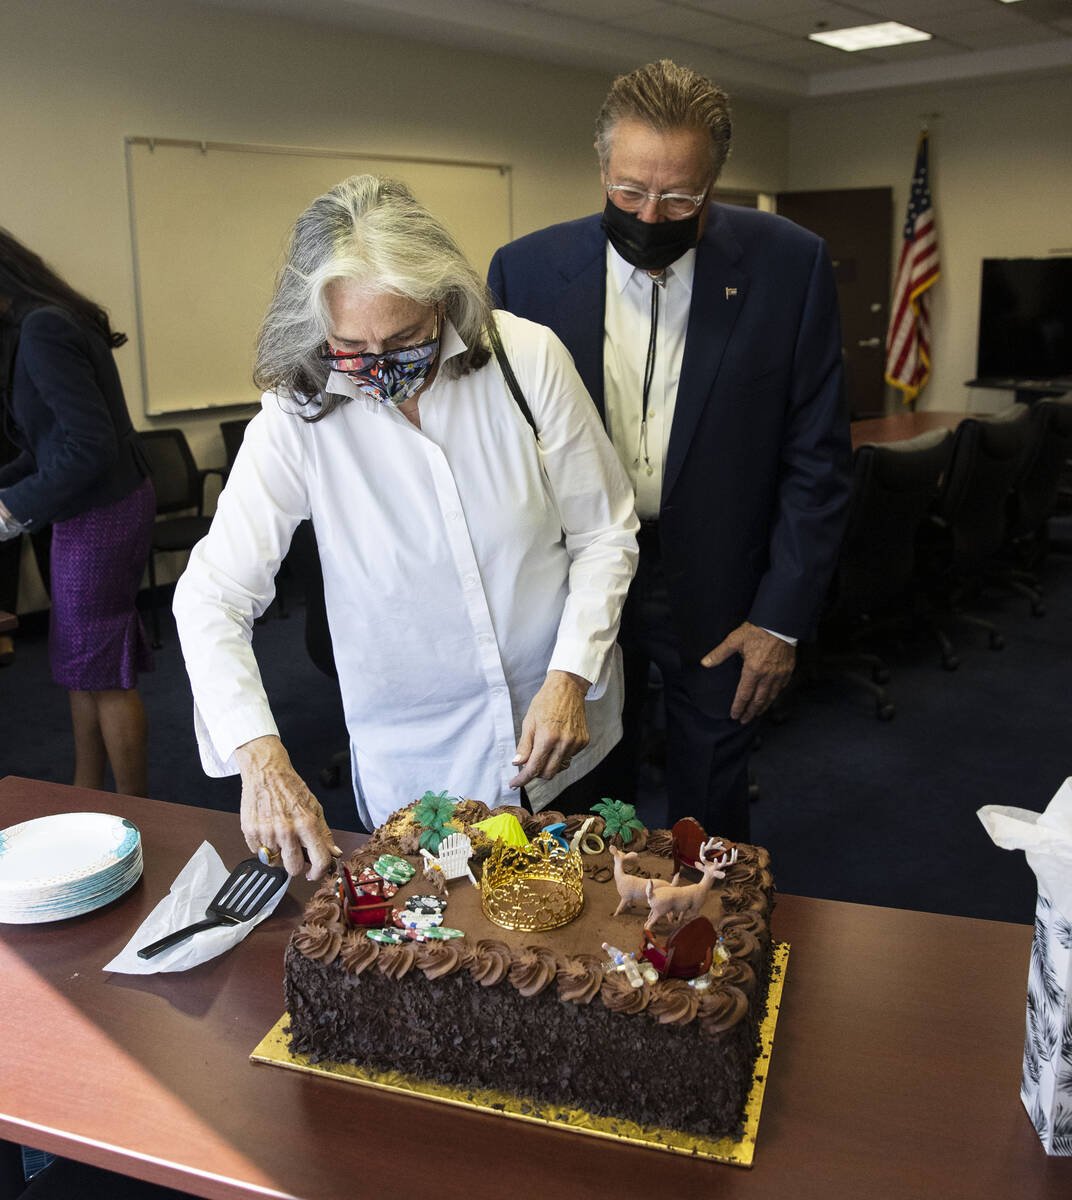 John Moran, chairman of the Nevada Gaming Commission, watches as his wife Marilyn cuts a custom ...